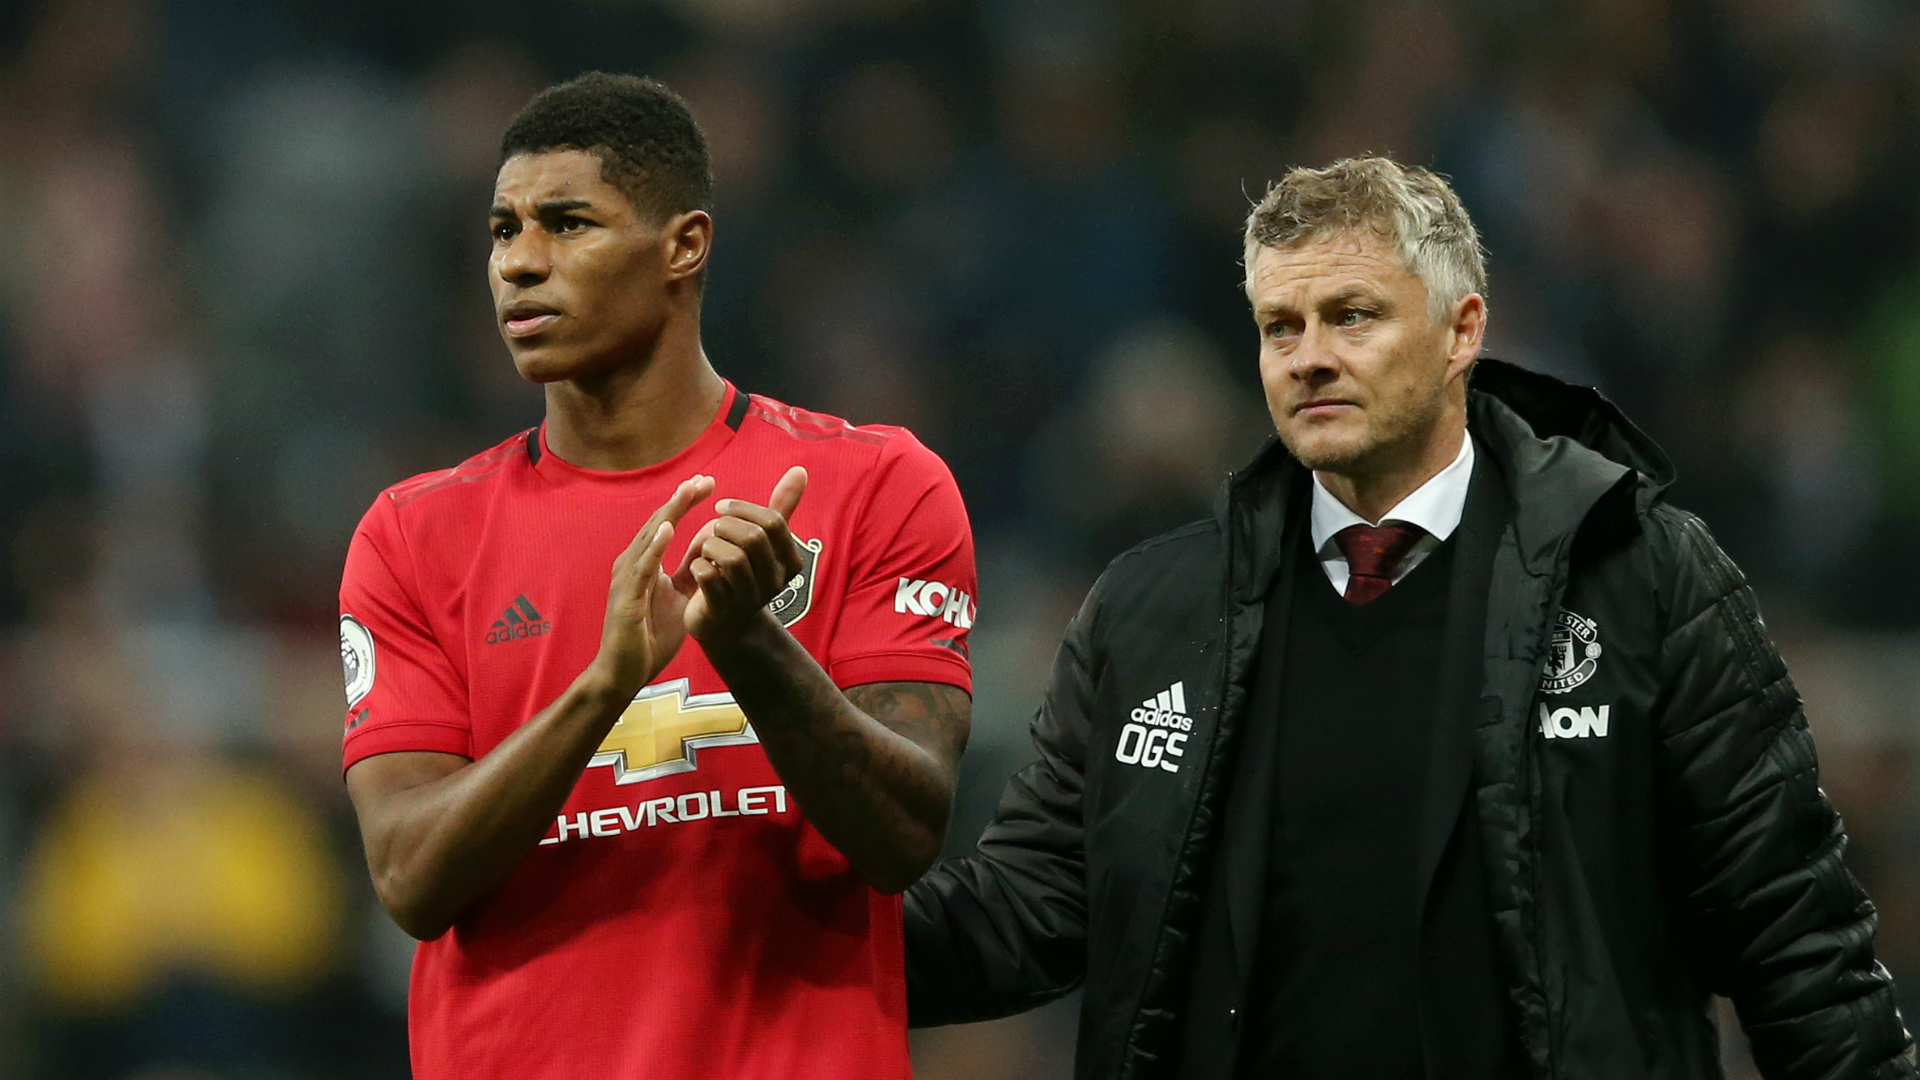 Rashford: Man United fans deserve better